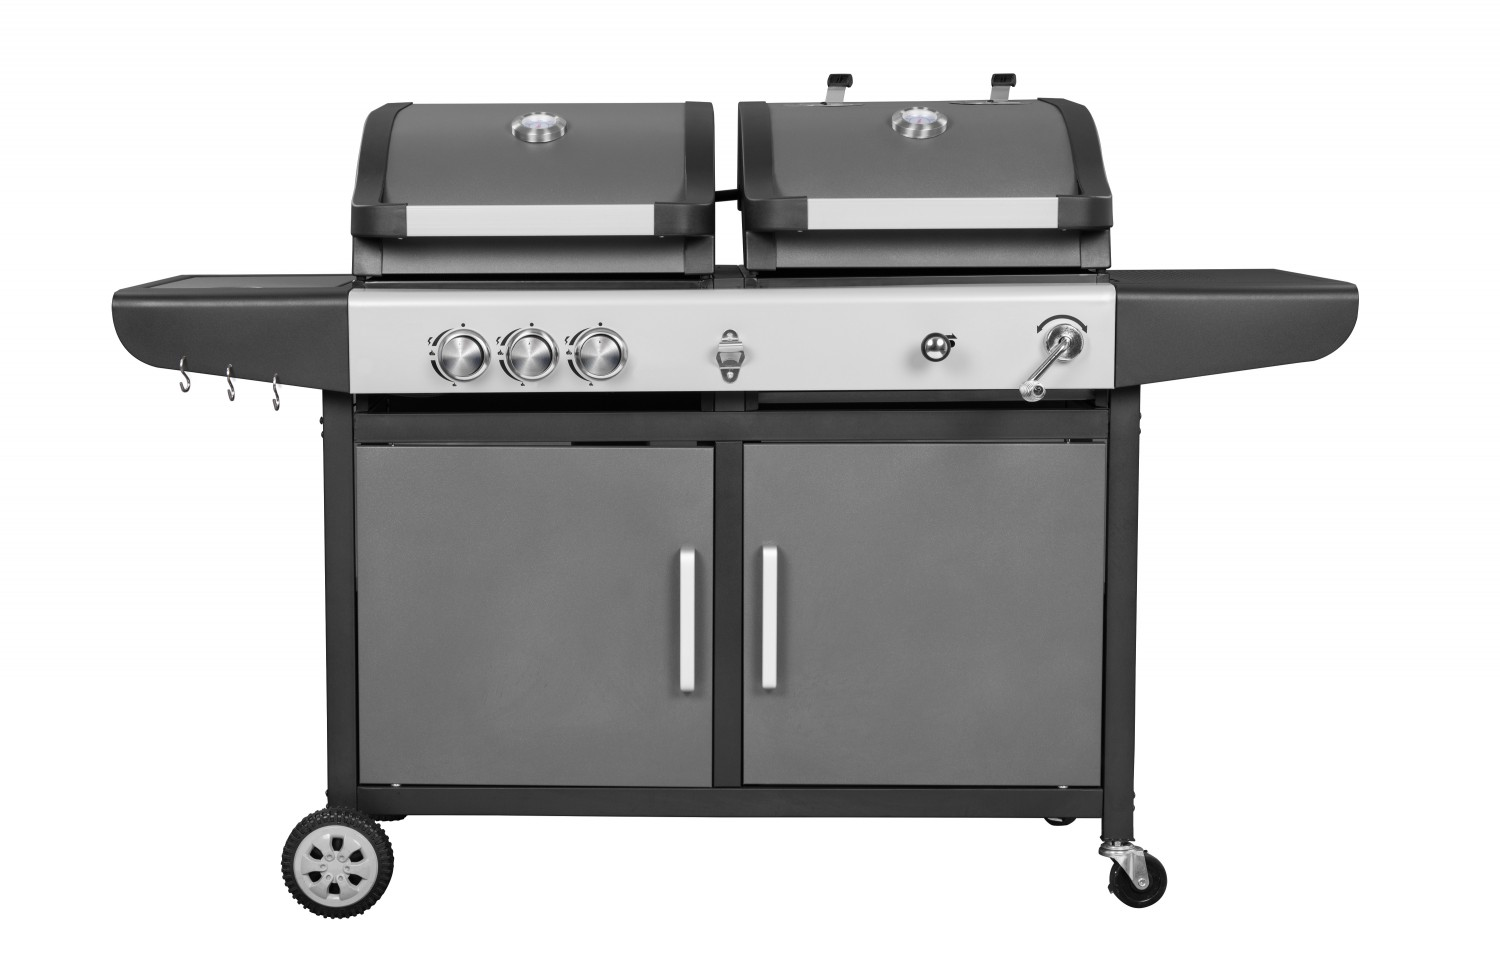 kohle grill top ruchergrill bbq with kohle grill kohlegrill klassischer bbq grill smoker with. Black Bedroom Furniture Sets. Home Design Ideas